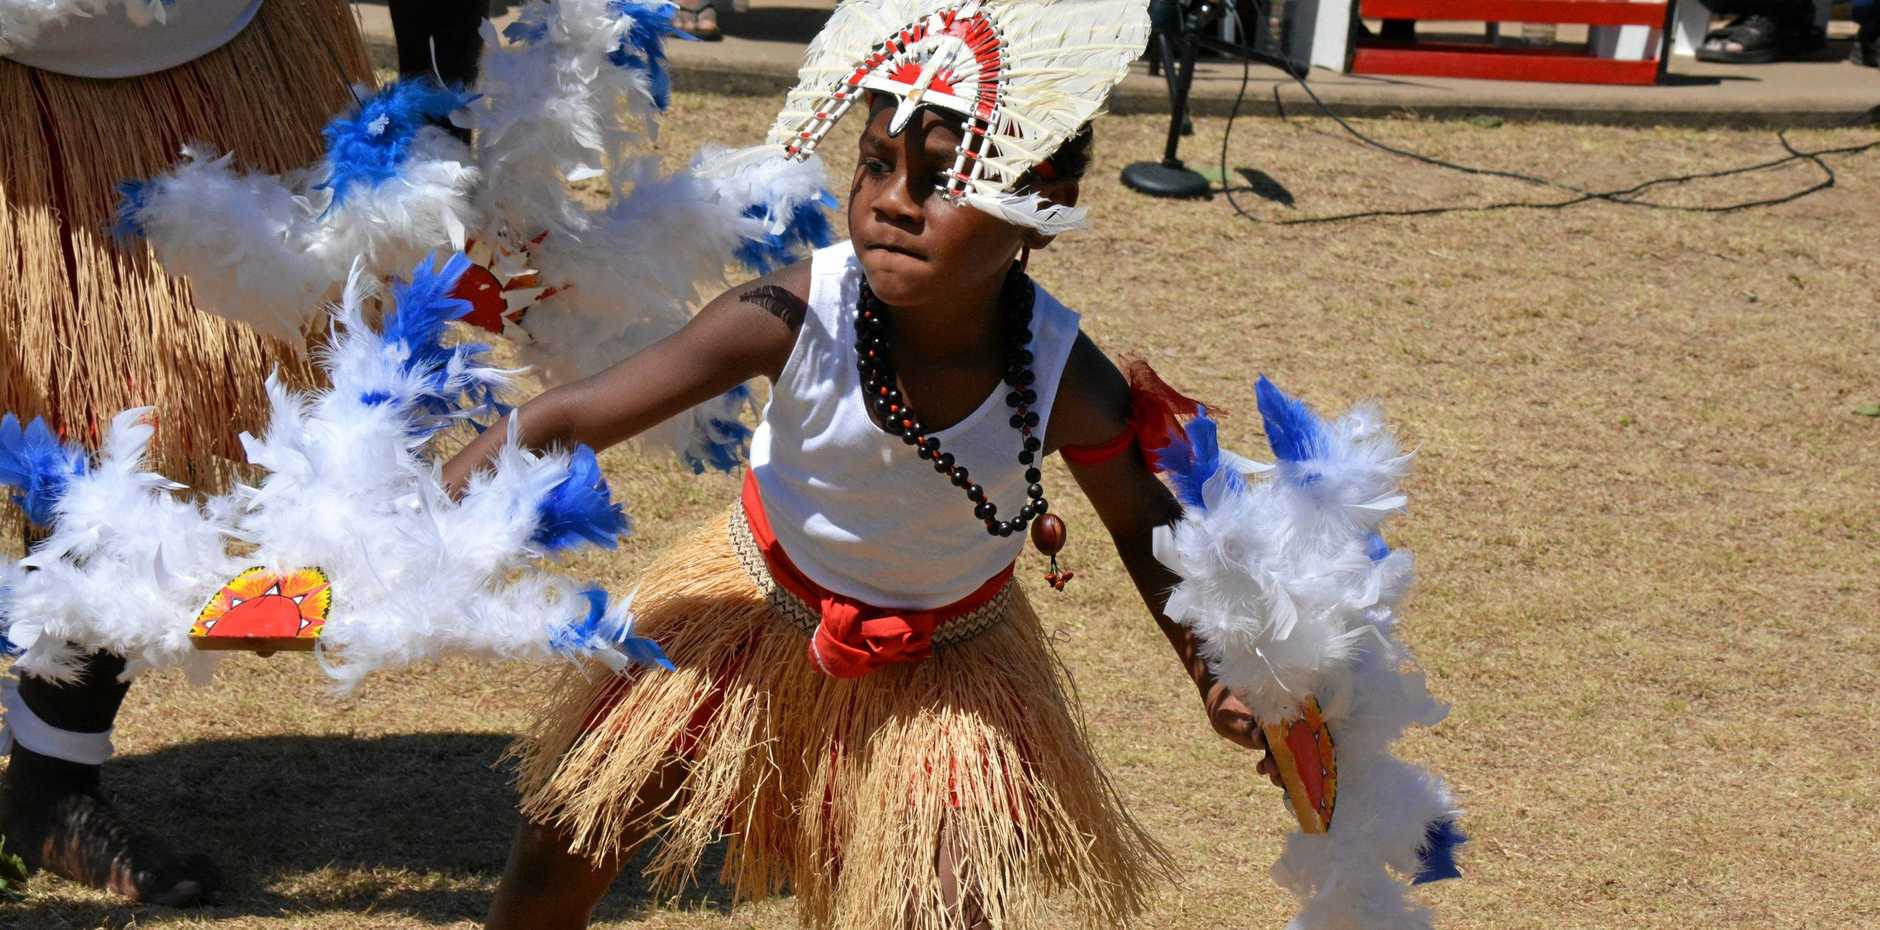 WORLD STAGE: Torres Strait Islander dancers will perform a year-long show at Dreamworld.